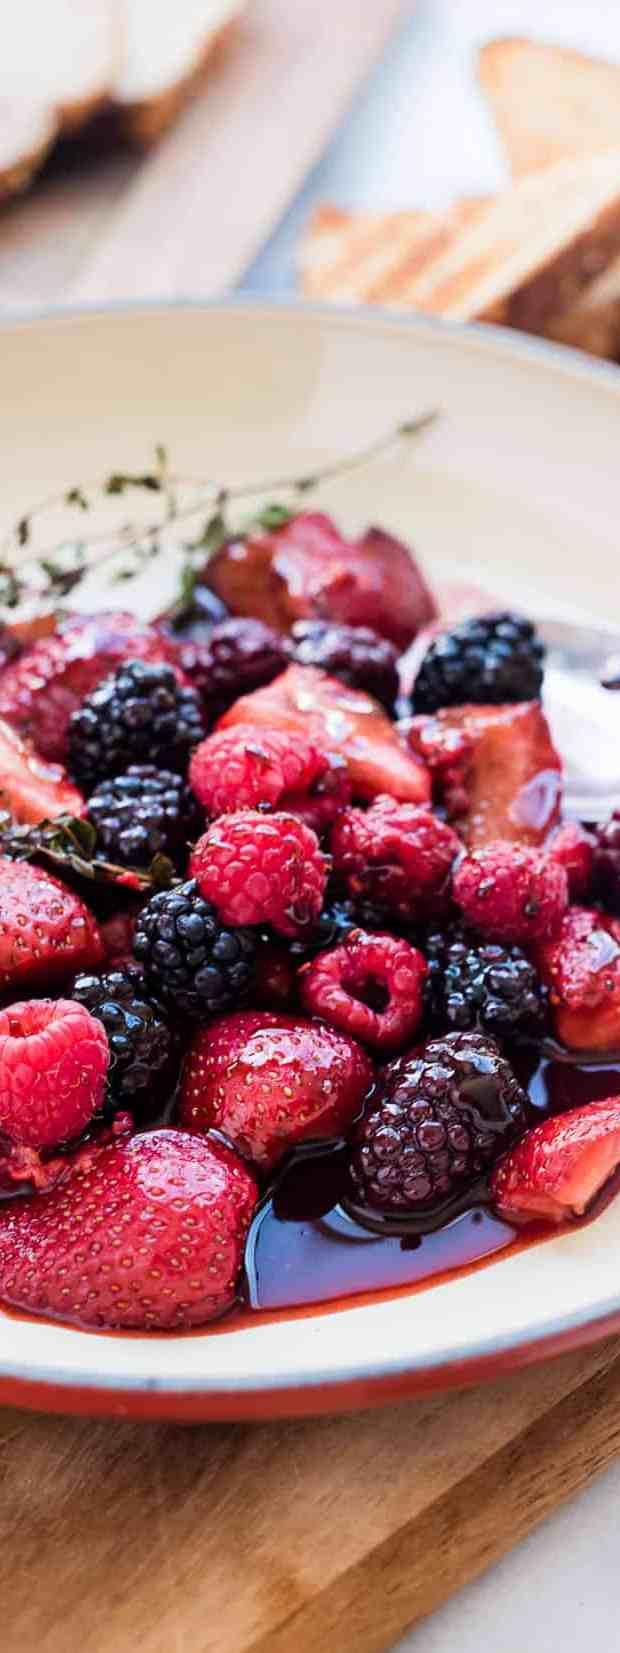 Balsamic berries in a white dish.